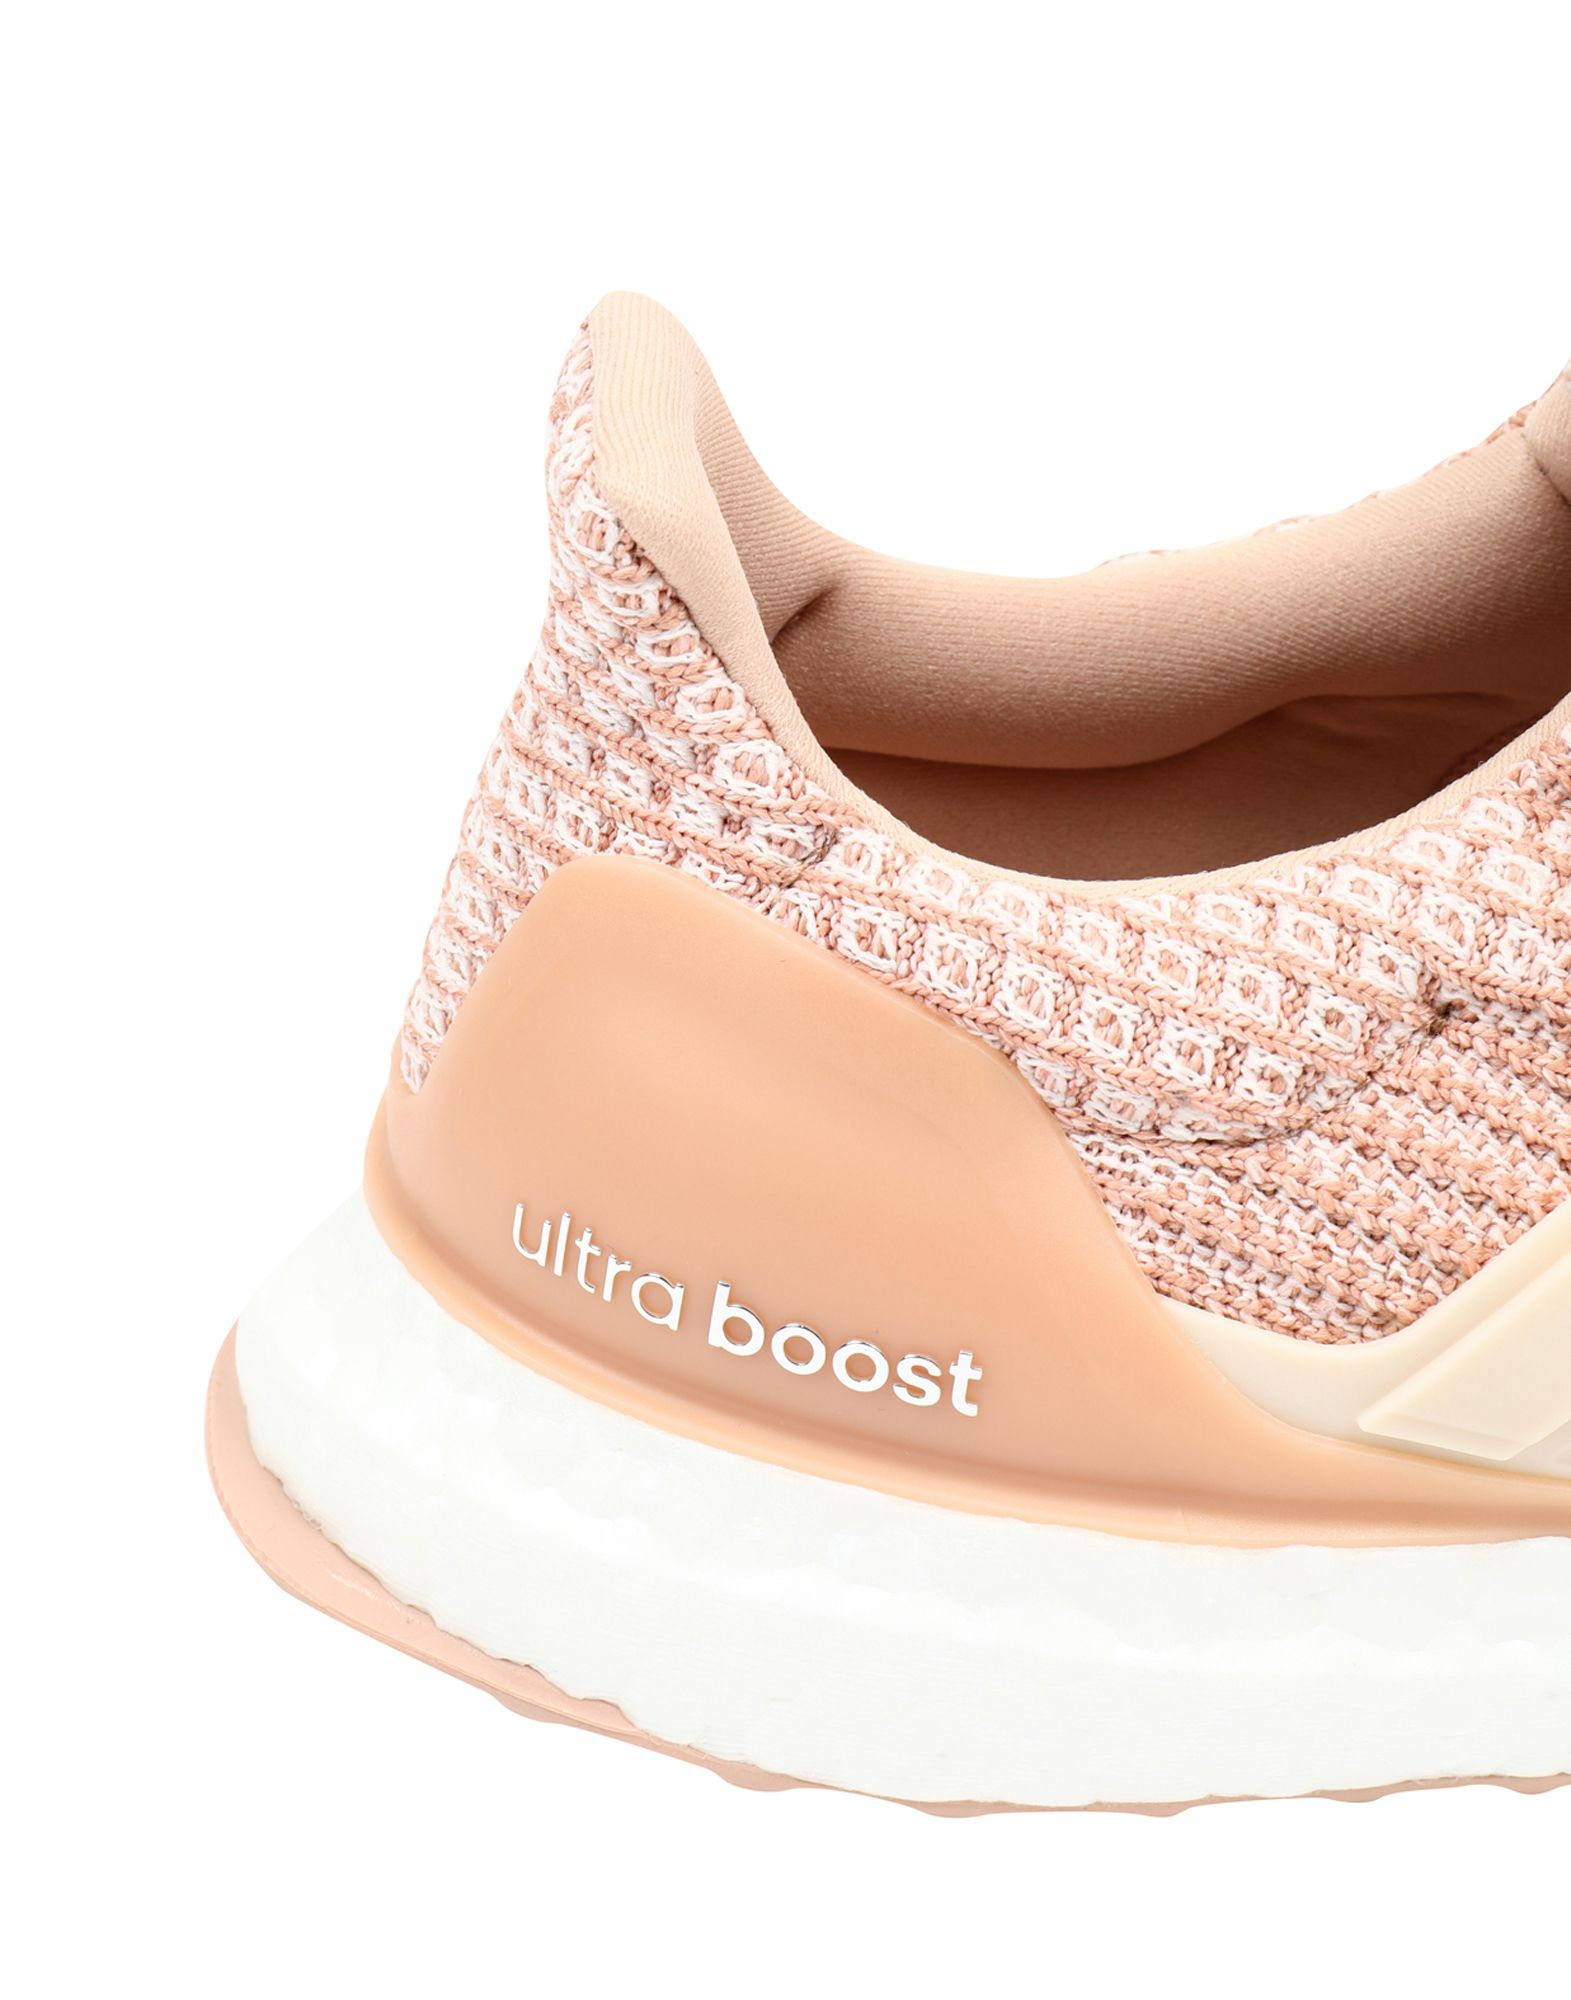 Sneakers - Adidas Ultraboost W - Sneakers Donna - 11533930BF ce7978